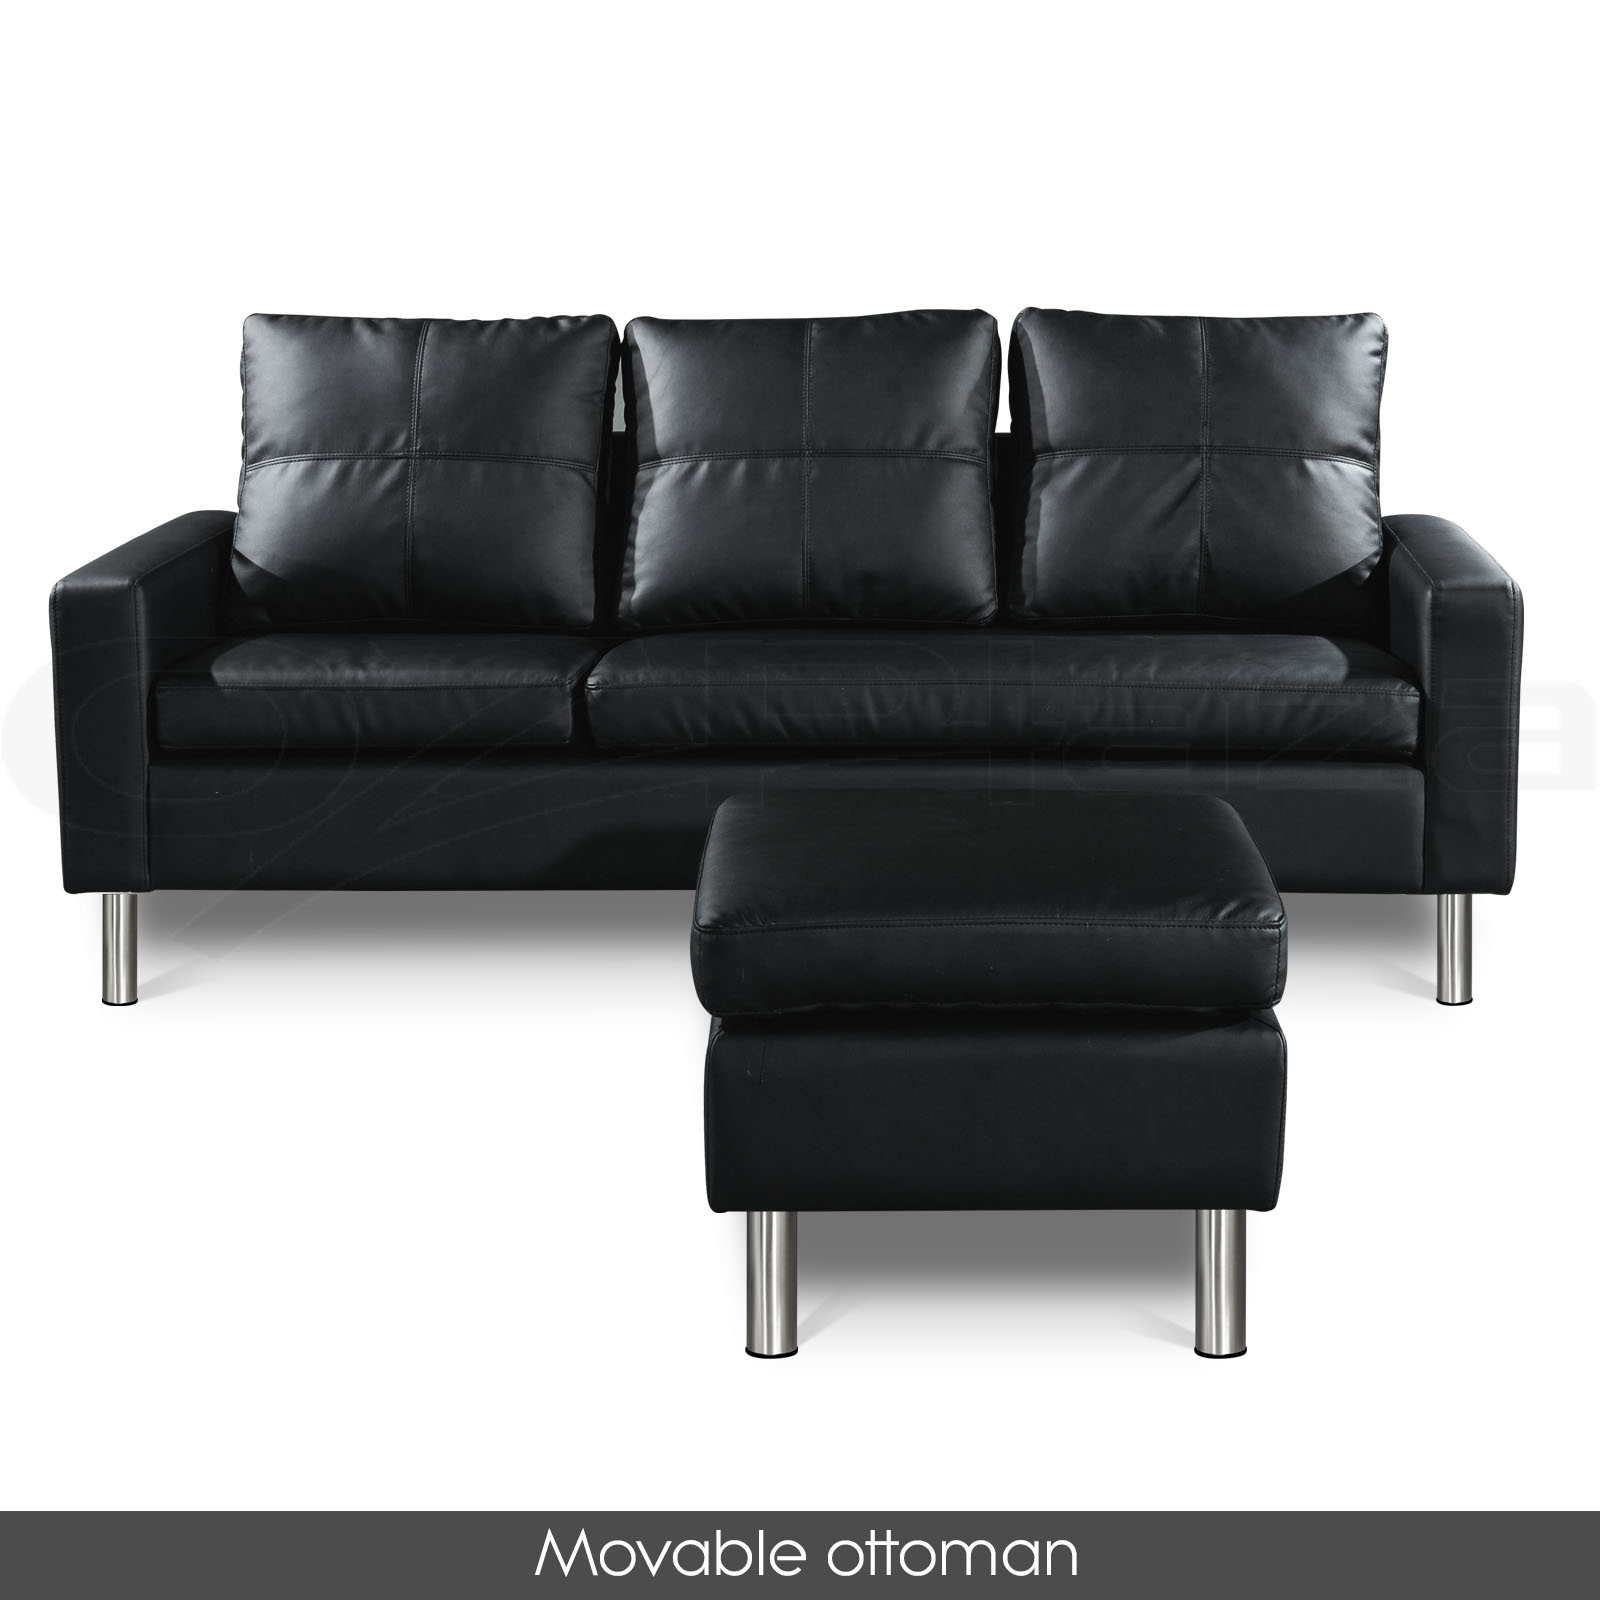 Pu leather sofa modular lounge suite chaise double couch 4 for Black leather sofa chaise lounge